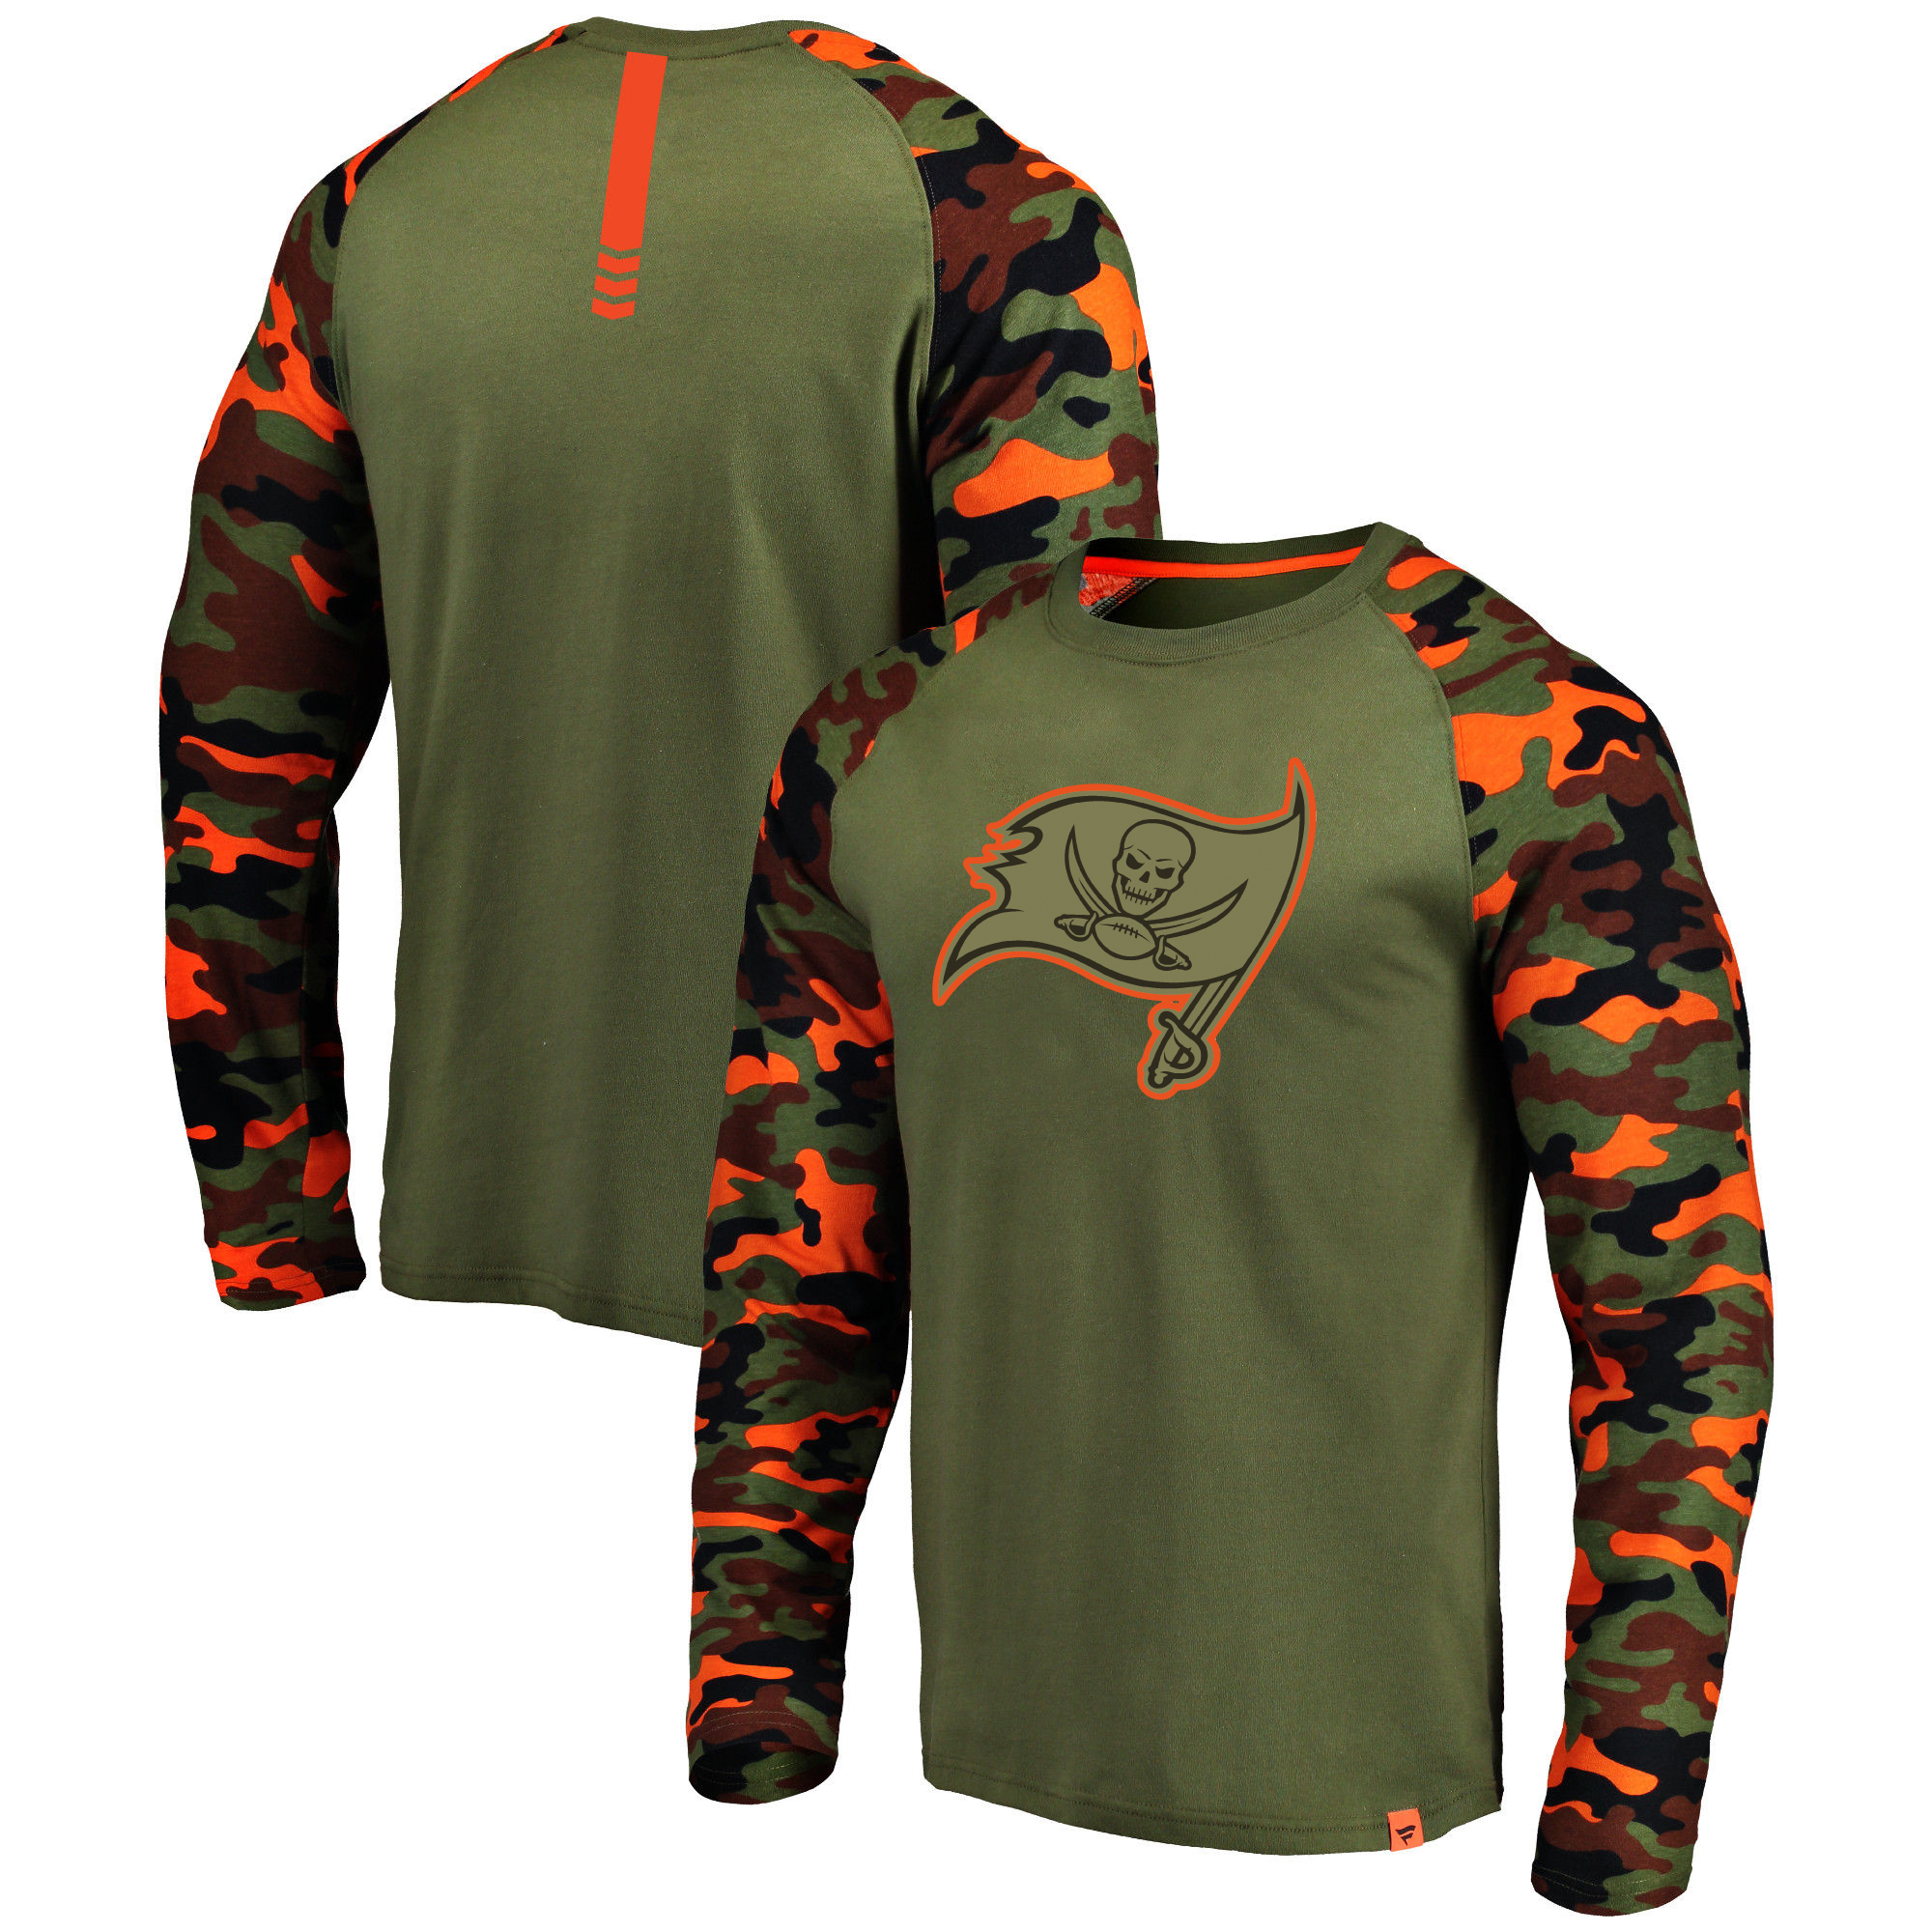 Tampa Bay Buccaneers Heathered Gray Camo NFL Pro Line by Fanatics Branded Long Sleeve T-Shirt